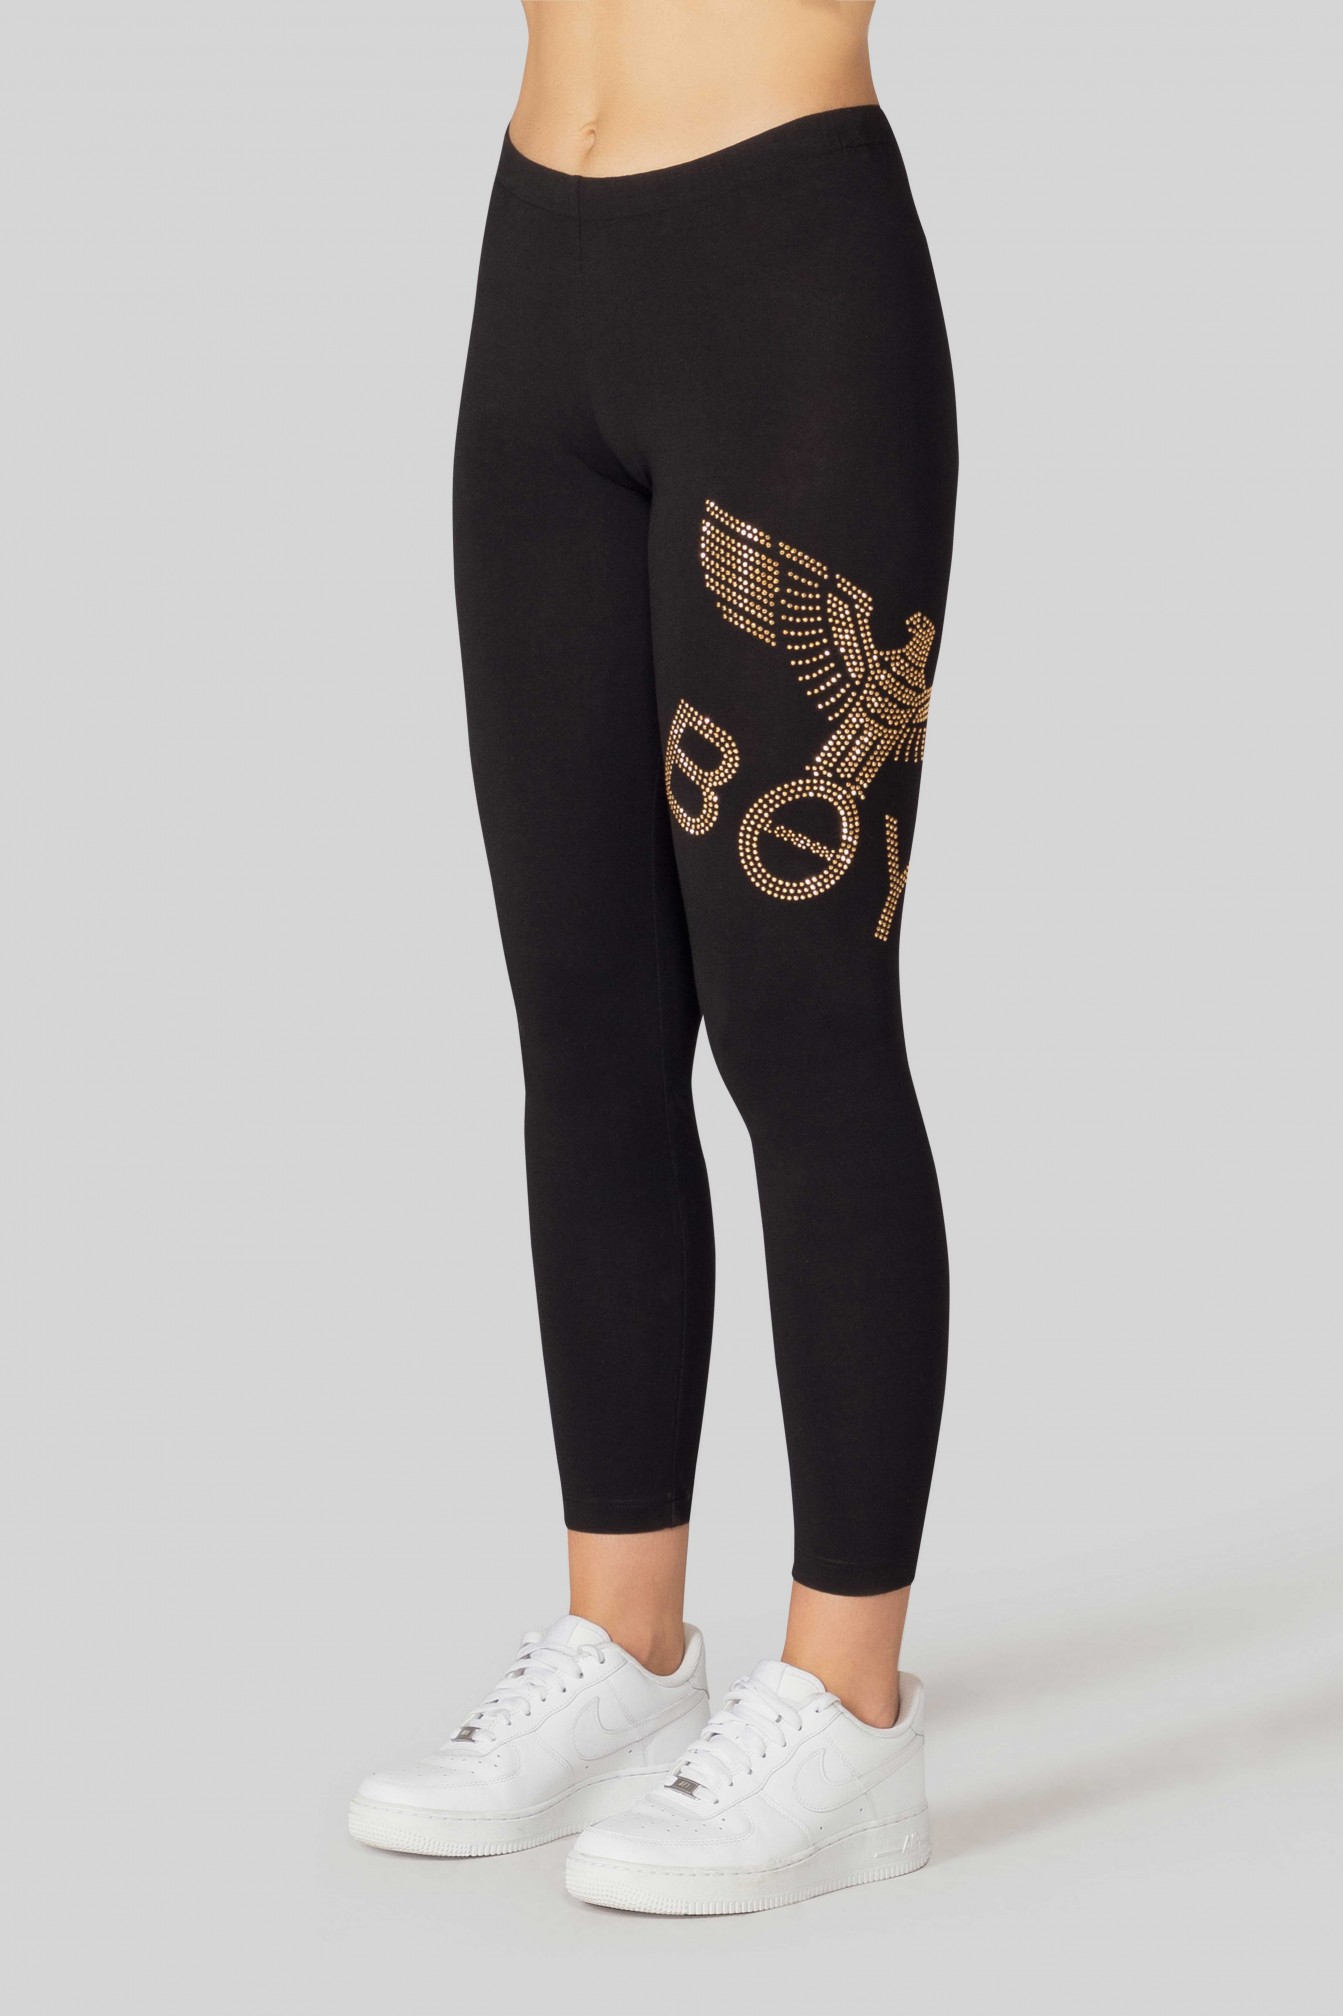 LEGGINGS - BLD2702 - BOY LONDON